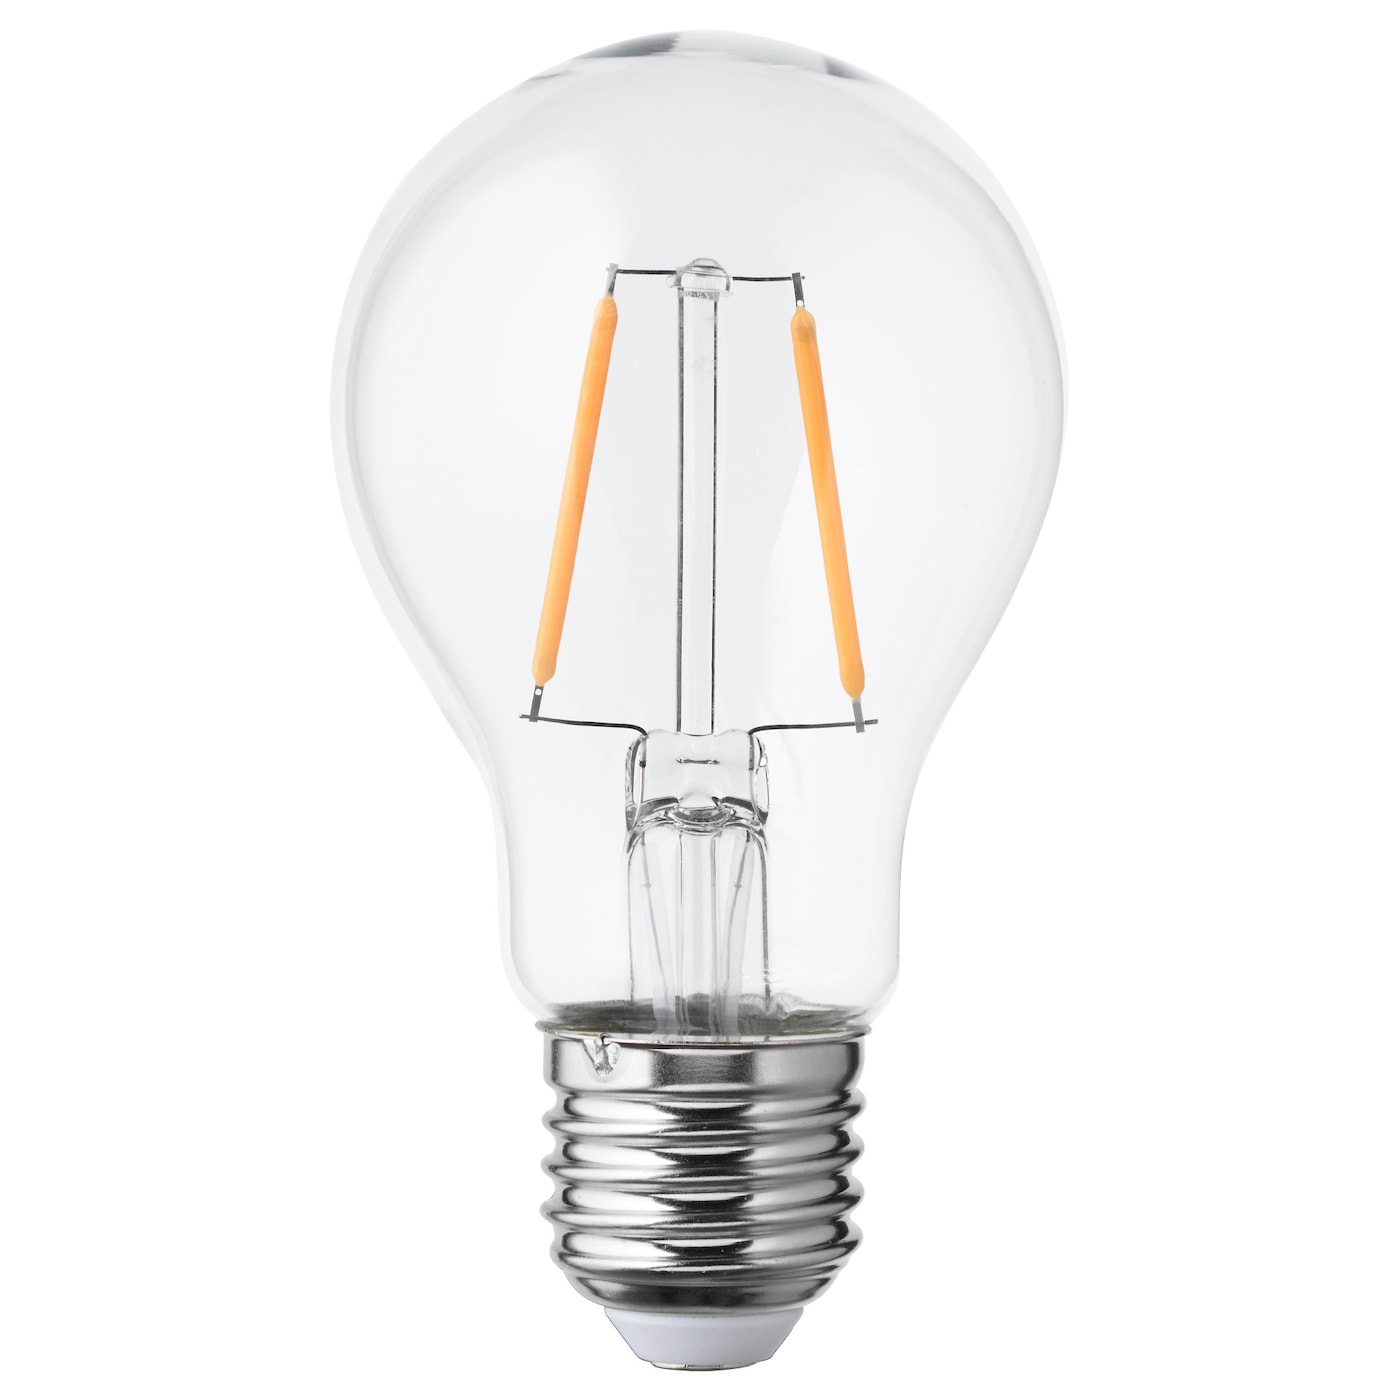 LUNNOM LED bulb E27 100 lumen Globe clear glass 60 mm - IKEA